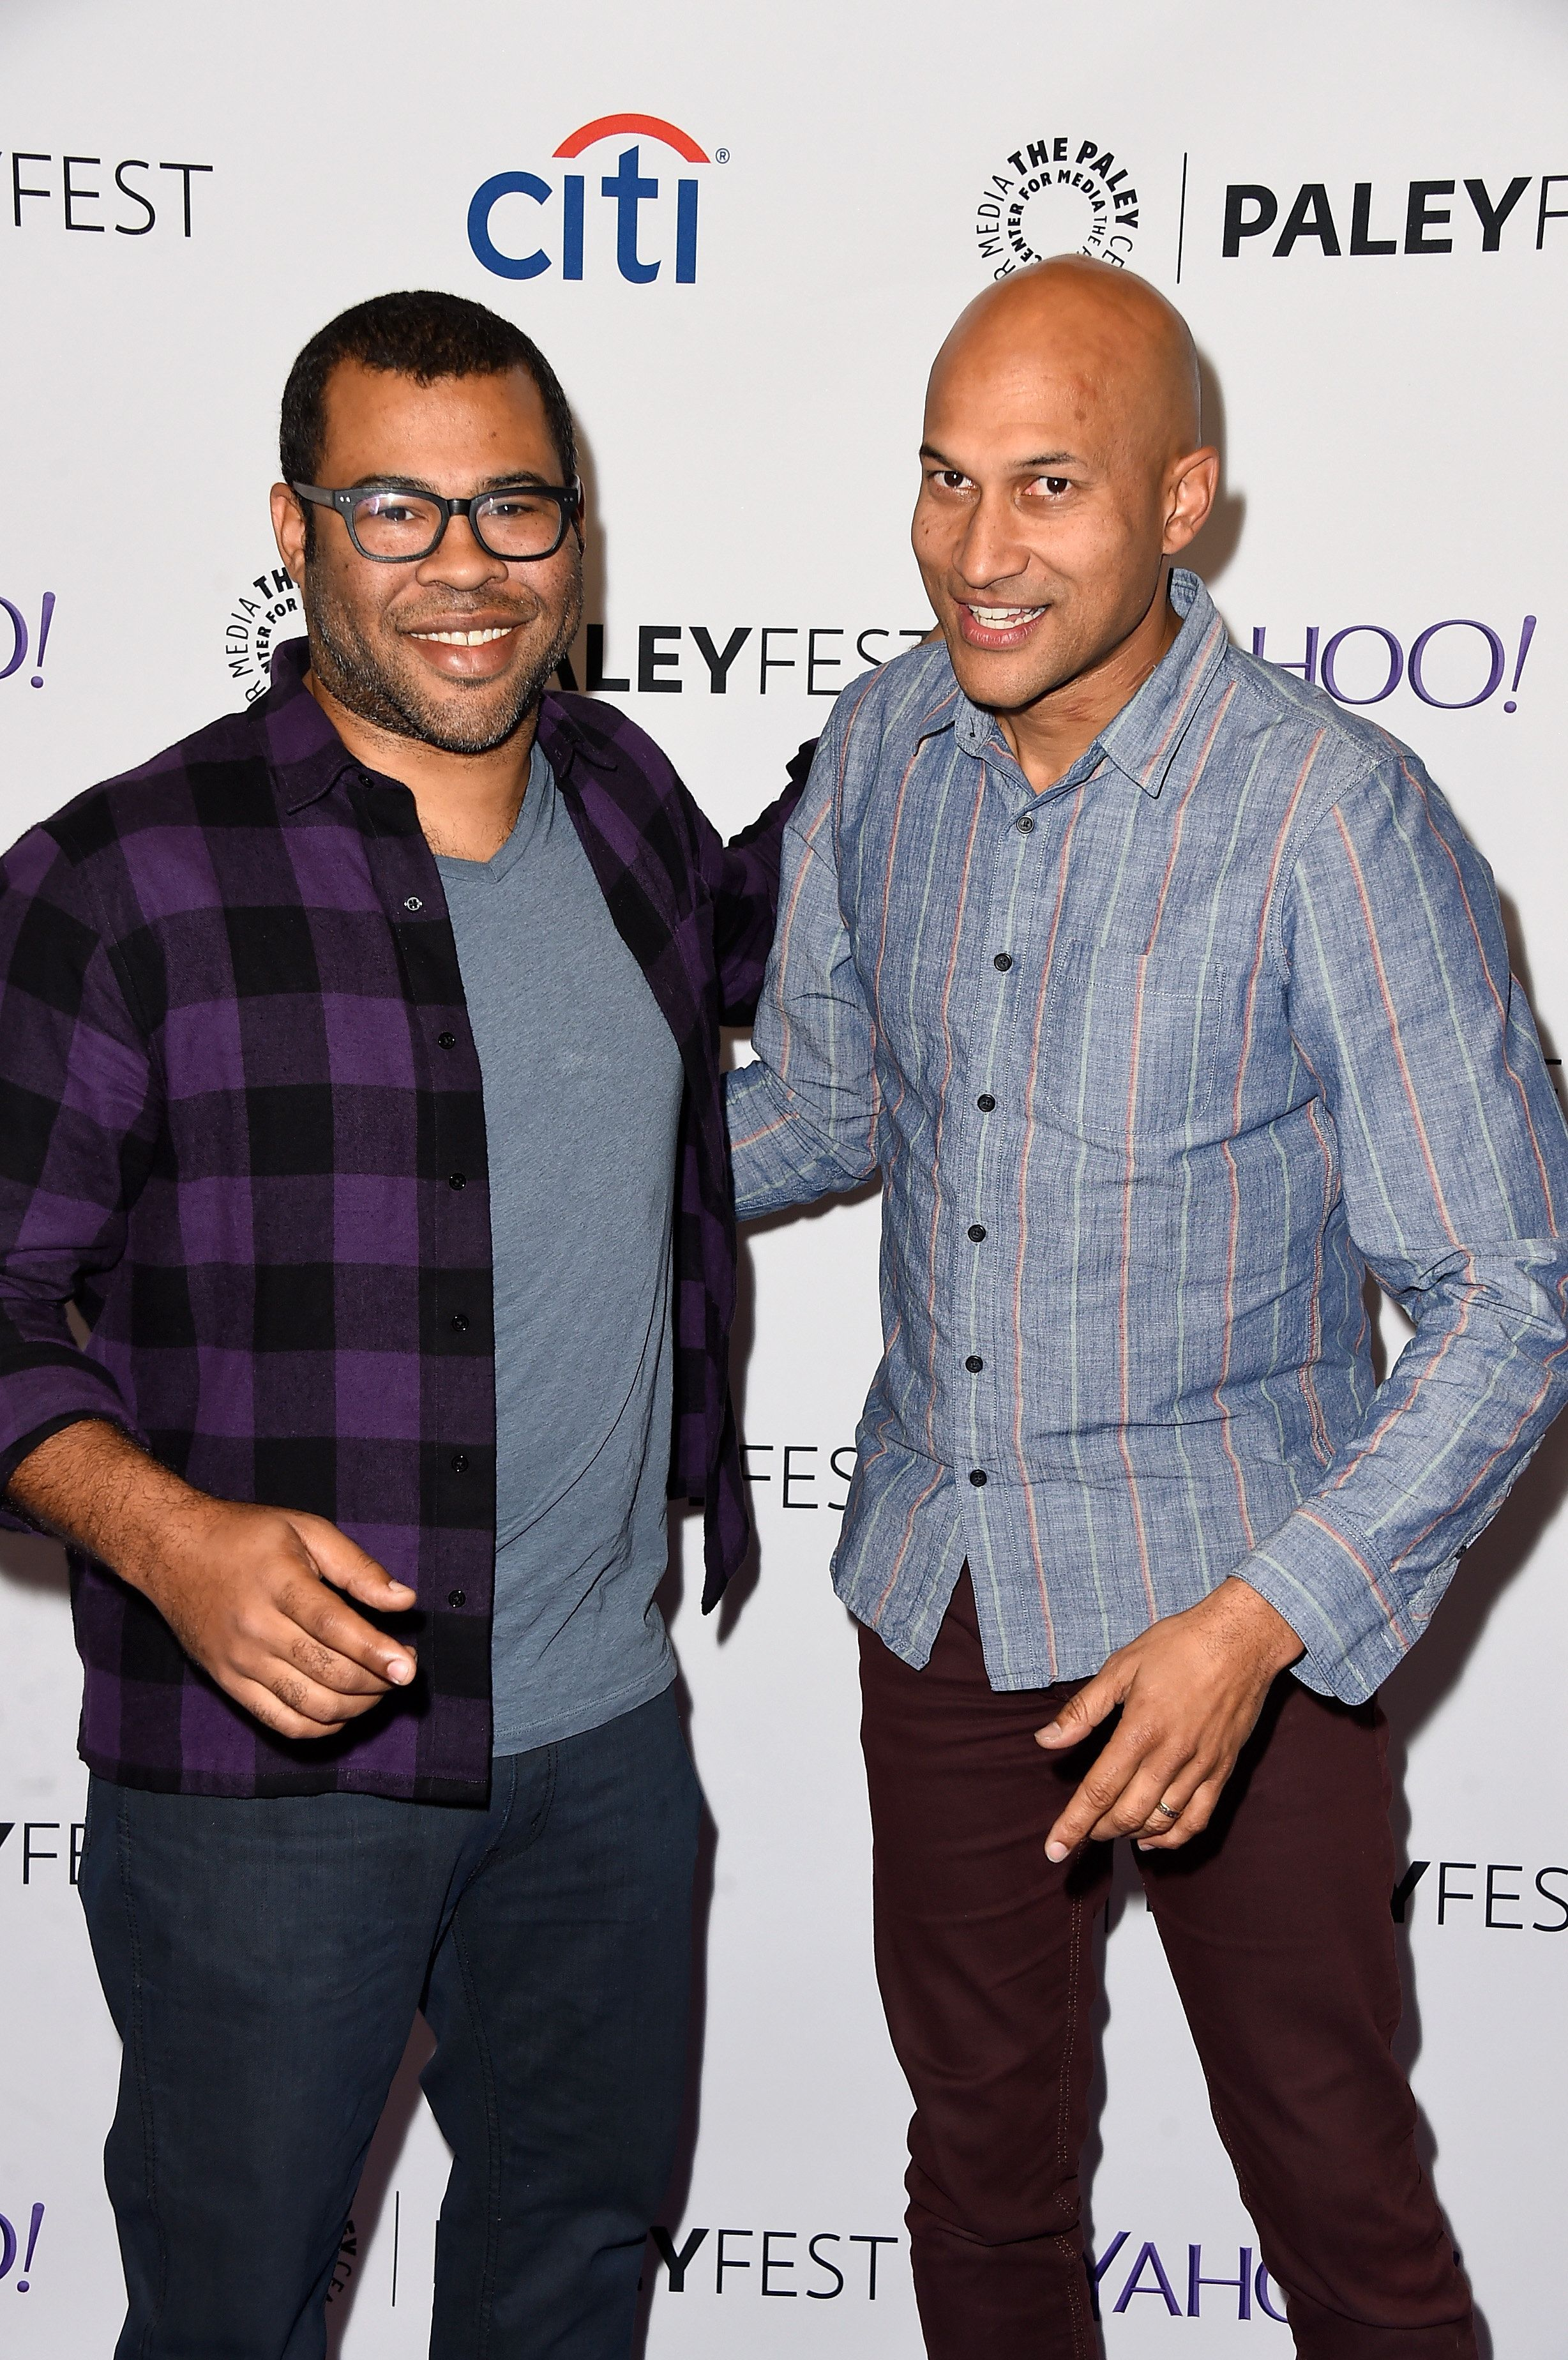 HOLLYWOOD, CA - MARCH 07:  (L-R) Comdeians Jordan Peele, Keegan-Michael Key arrive at The Paley Center For Media's 32nd Annual PALEYFEST LA - A Salute To Comedy Central at Dolby Theatre on March 7, 2015 in Hollywood, California.  (Photo by Frazer Harrison/Getty Images)